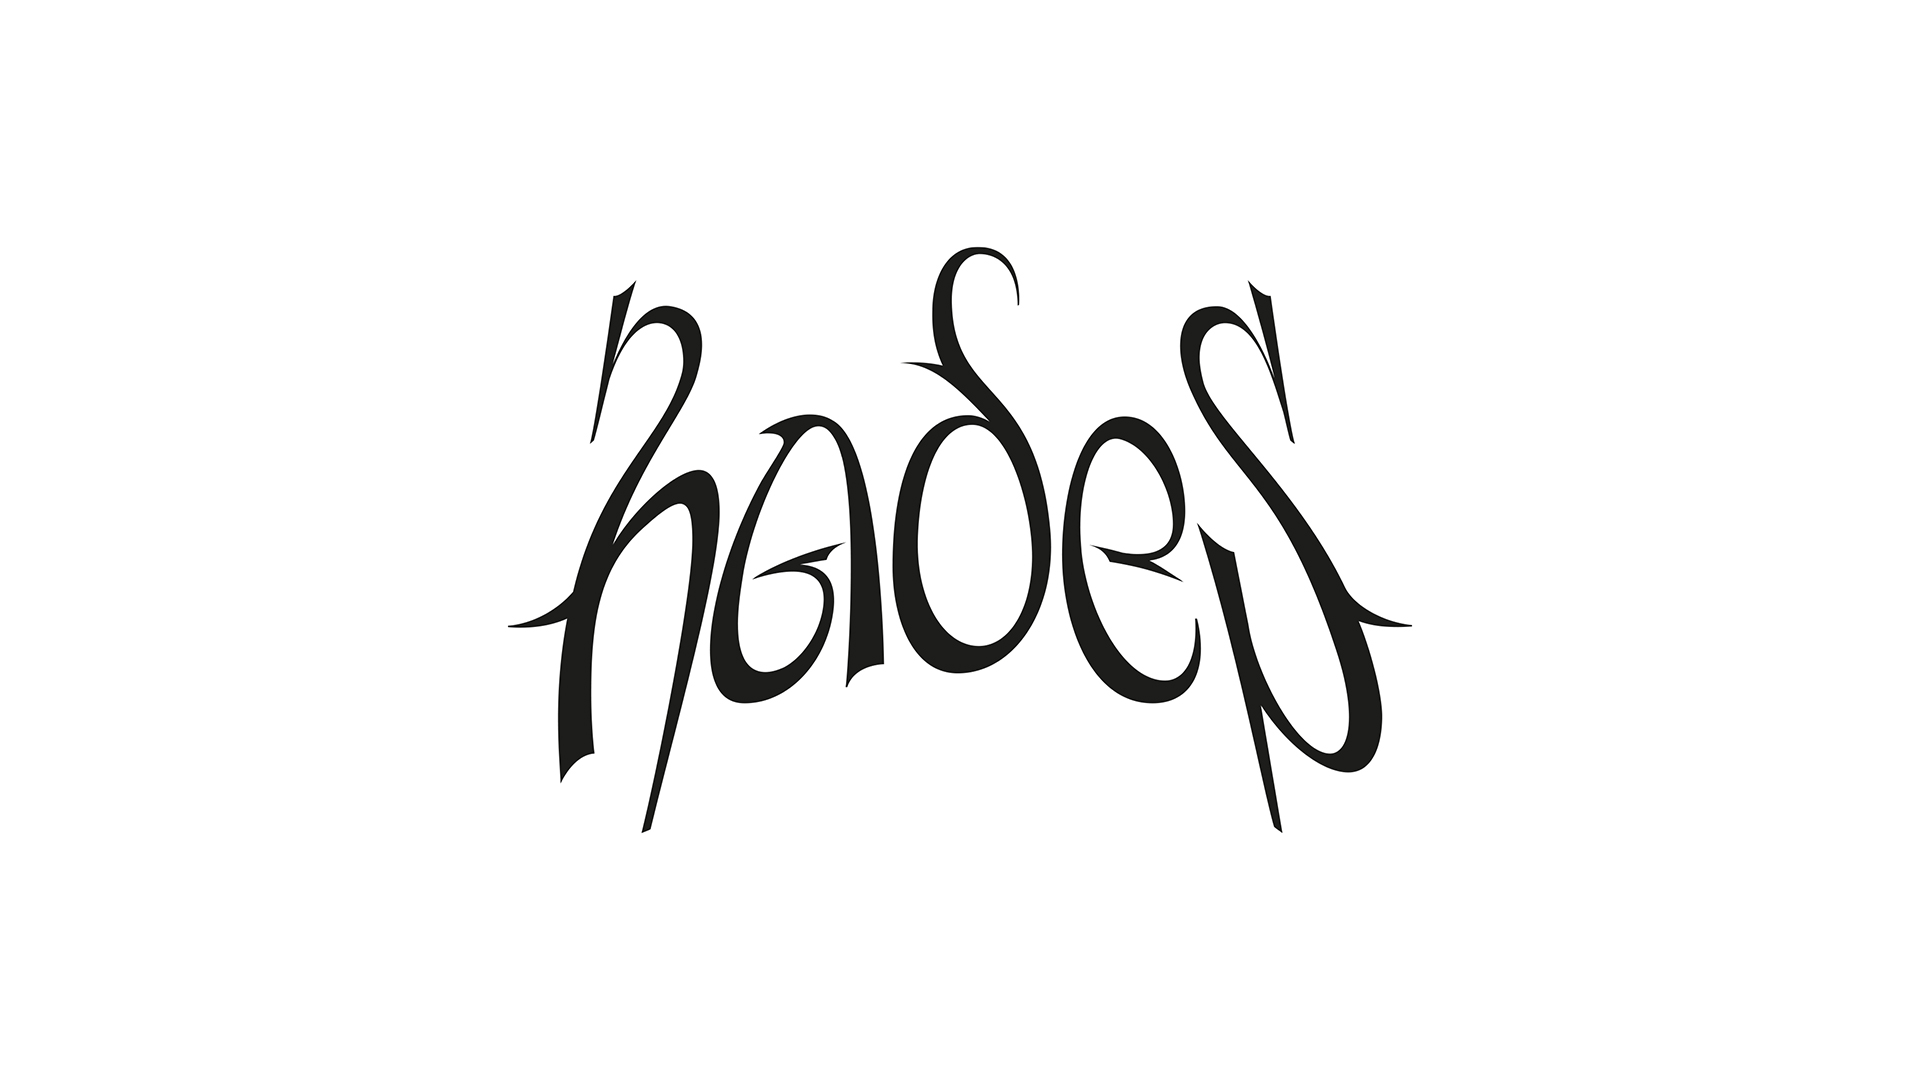 Hades_Lettering